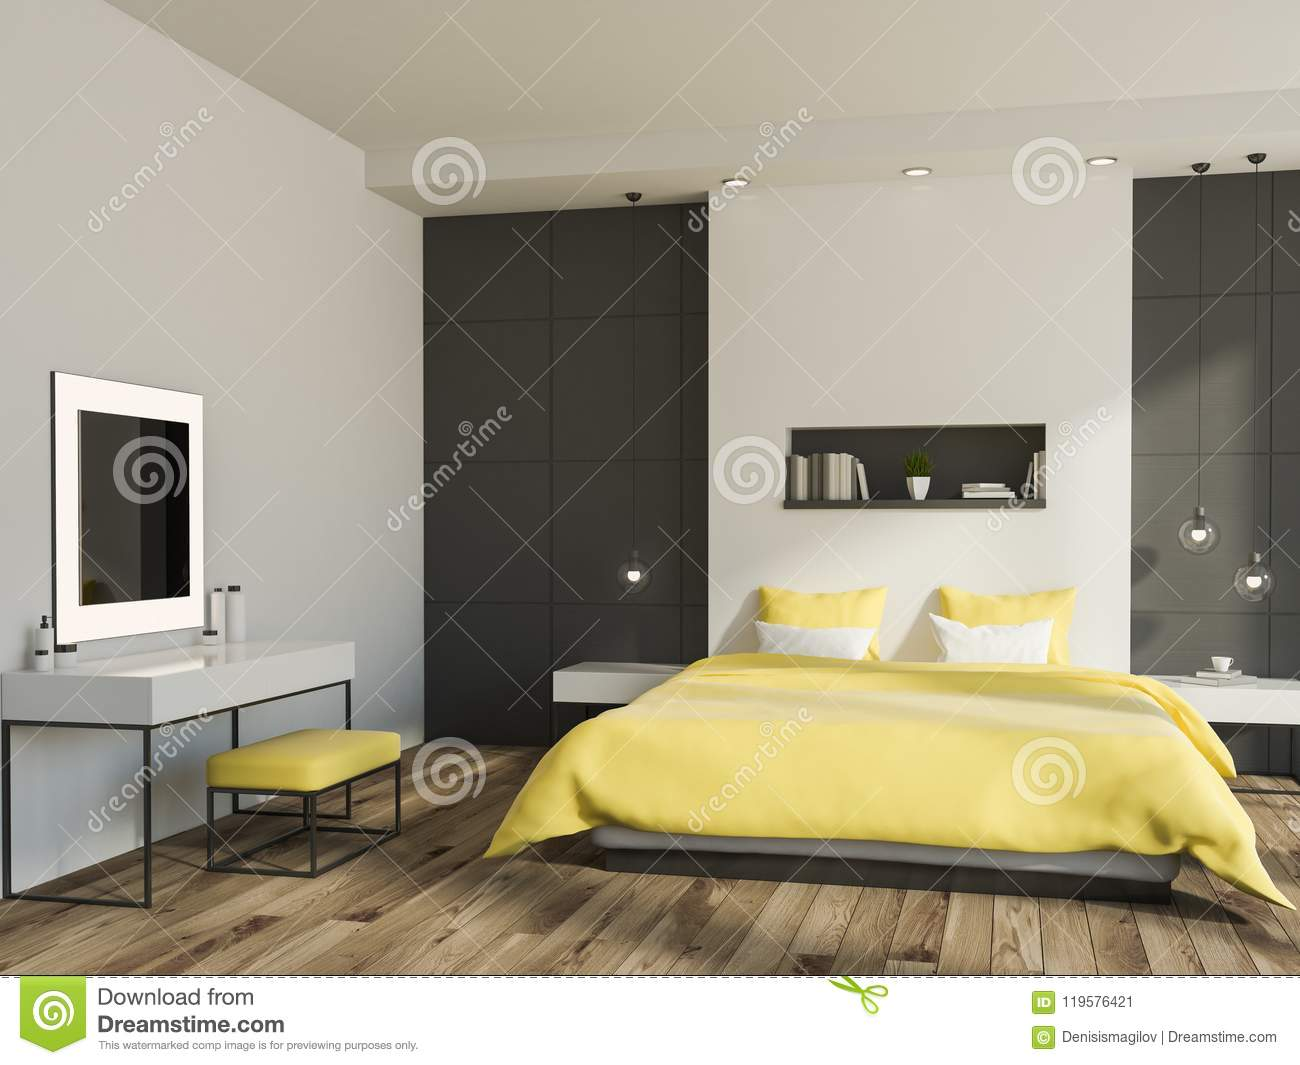 White and gray wall bedroom interior with a yellow bed a shelf above it a wooden floor and a tv set 3d rendering mock up